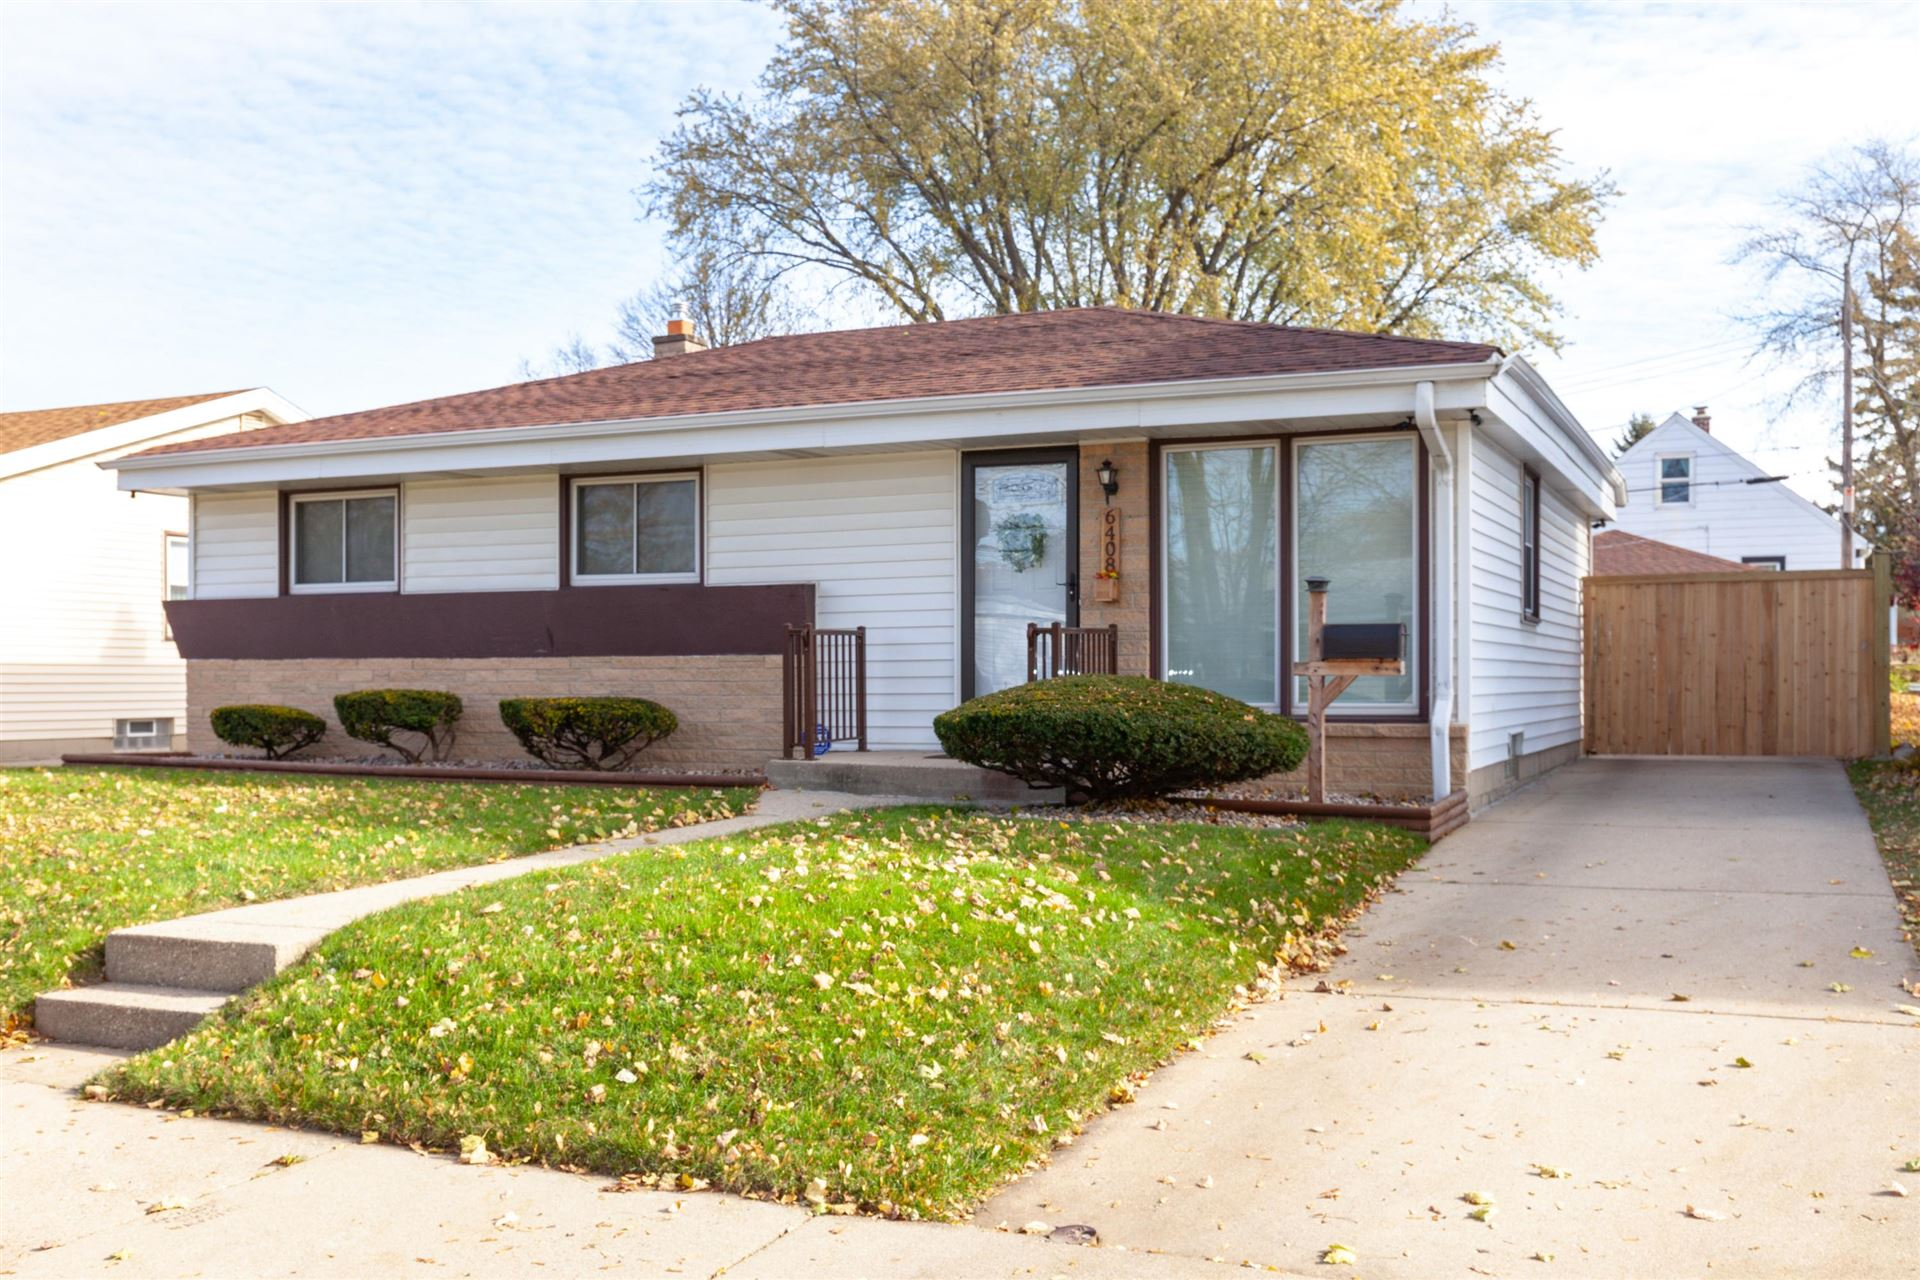 6408 N 49th St, Milwaukee, WI 53223 - #: 1719936